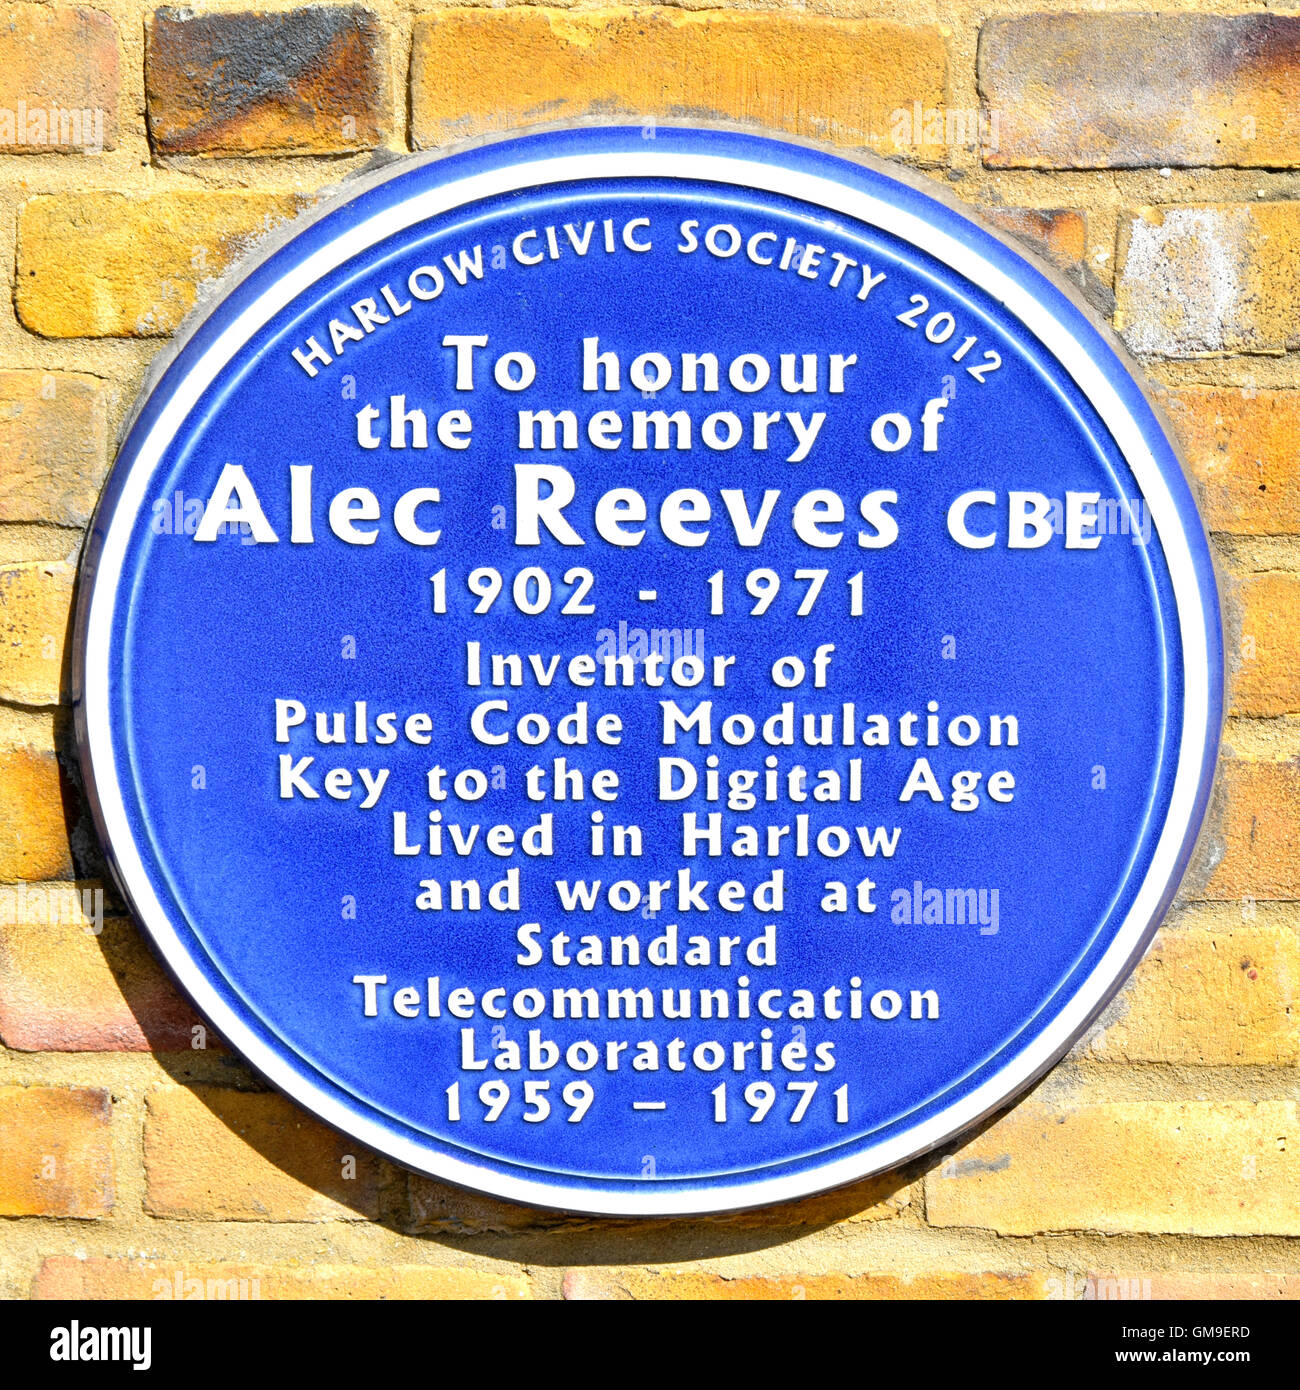 Blue Plaque on Harlow Essex England UK Civic Centre town hall wall to honour the memory of Alec Reeves CBE who invented - Stock Image